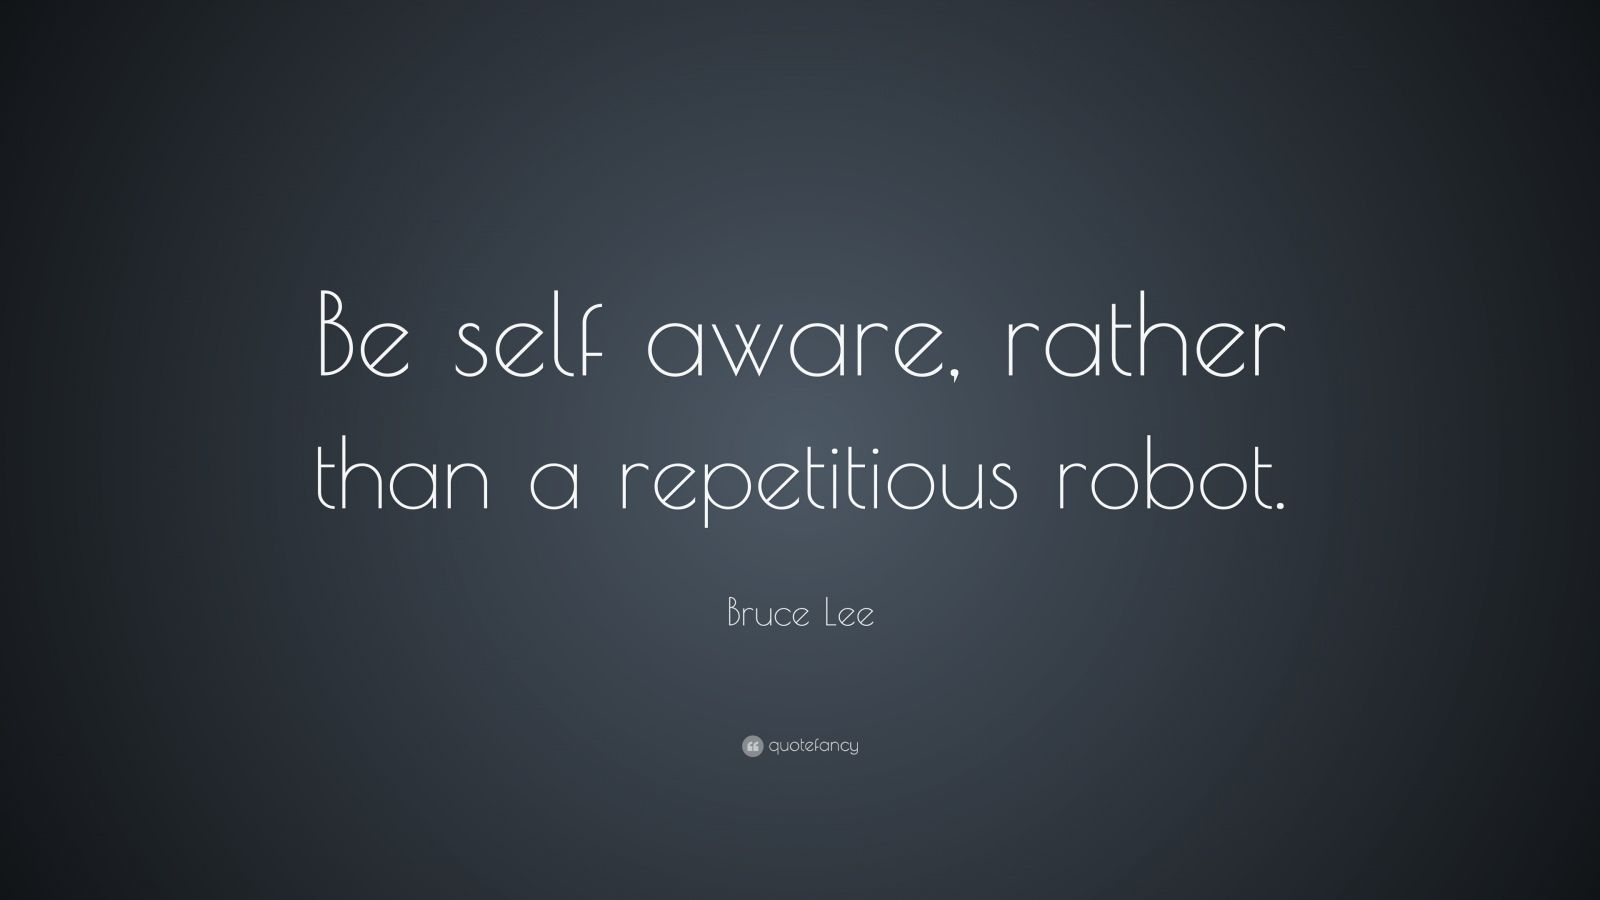 Bruce Lee Quote: Be self aware, rather than a repetitious robot.